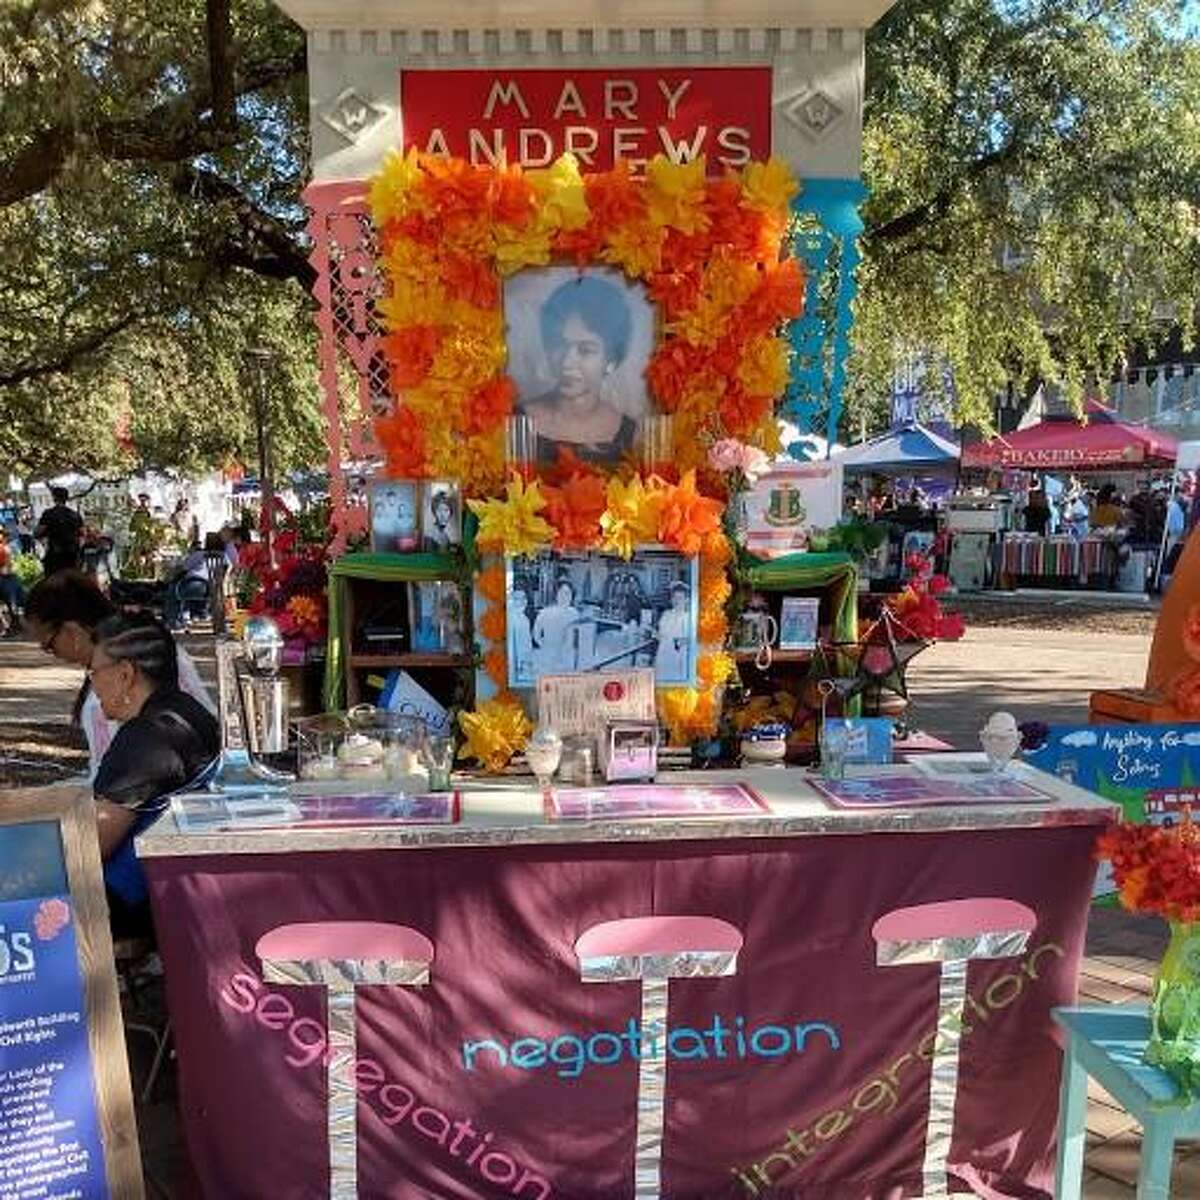 The Coalition for the Woolworth Building set up an altar at the 7th Annual Día de los Muertos Fest at Hemisfair in honor of the Woolworth Building's integrated lunch counter. The altar had a photograph of Mary Andrews, who was a freshman at Our Lady of the Lake University and president of the NAACP's local youth group when she wrote to San Antonio's downtown store managers in 1960 asking that they end segregation at their lunch counters.